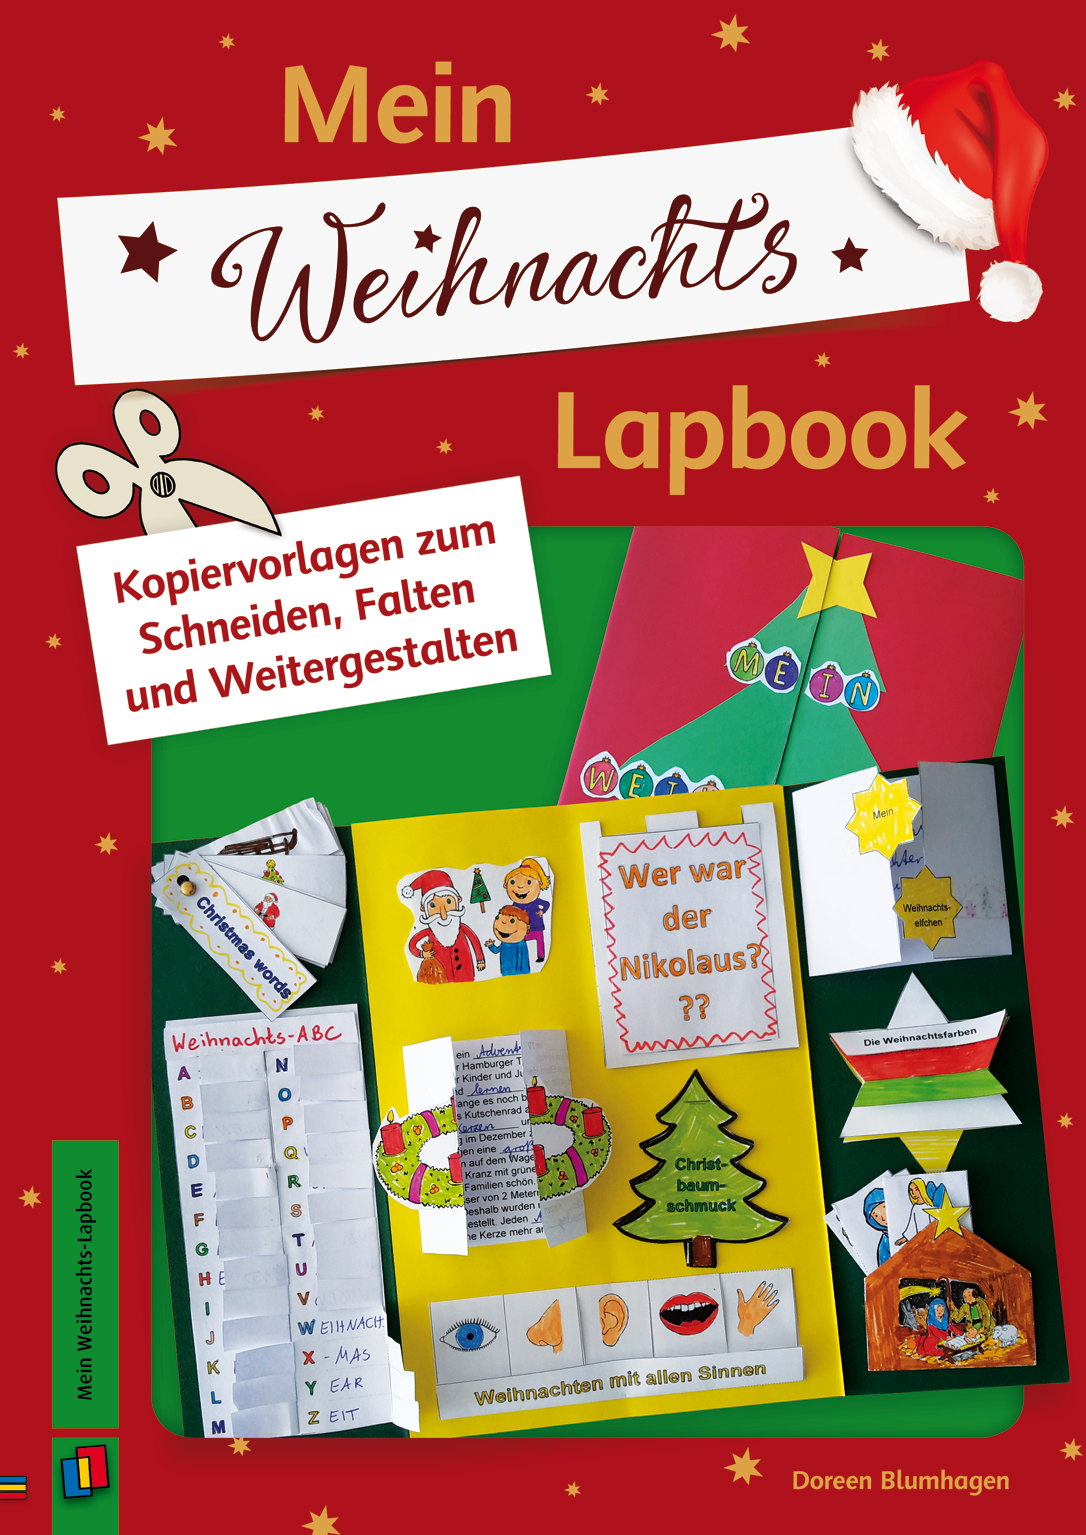 Mein Weihnachts-Lapbook | iskola | Pinterest | Religion, School and ...